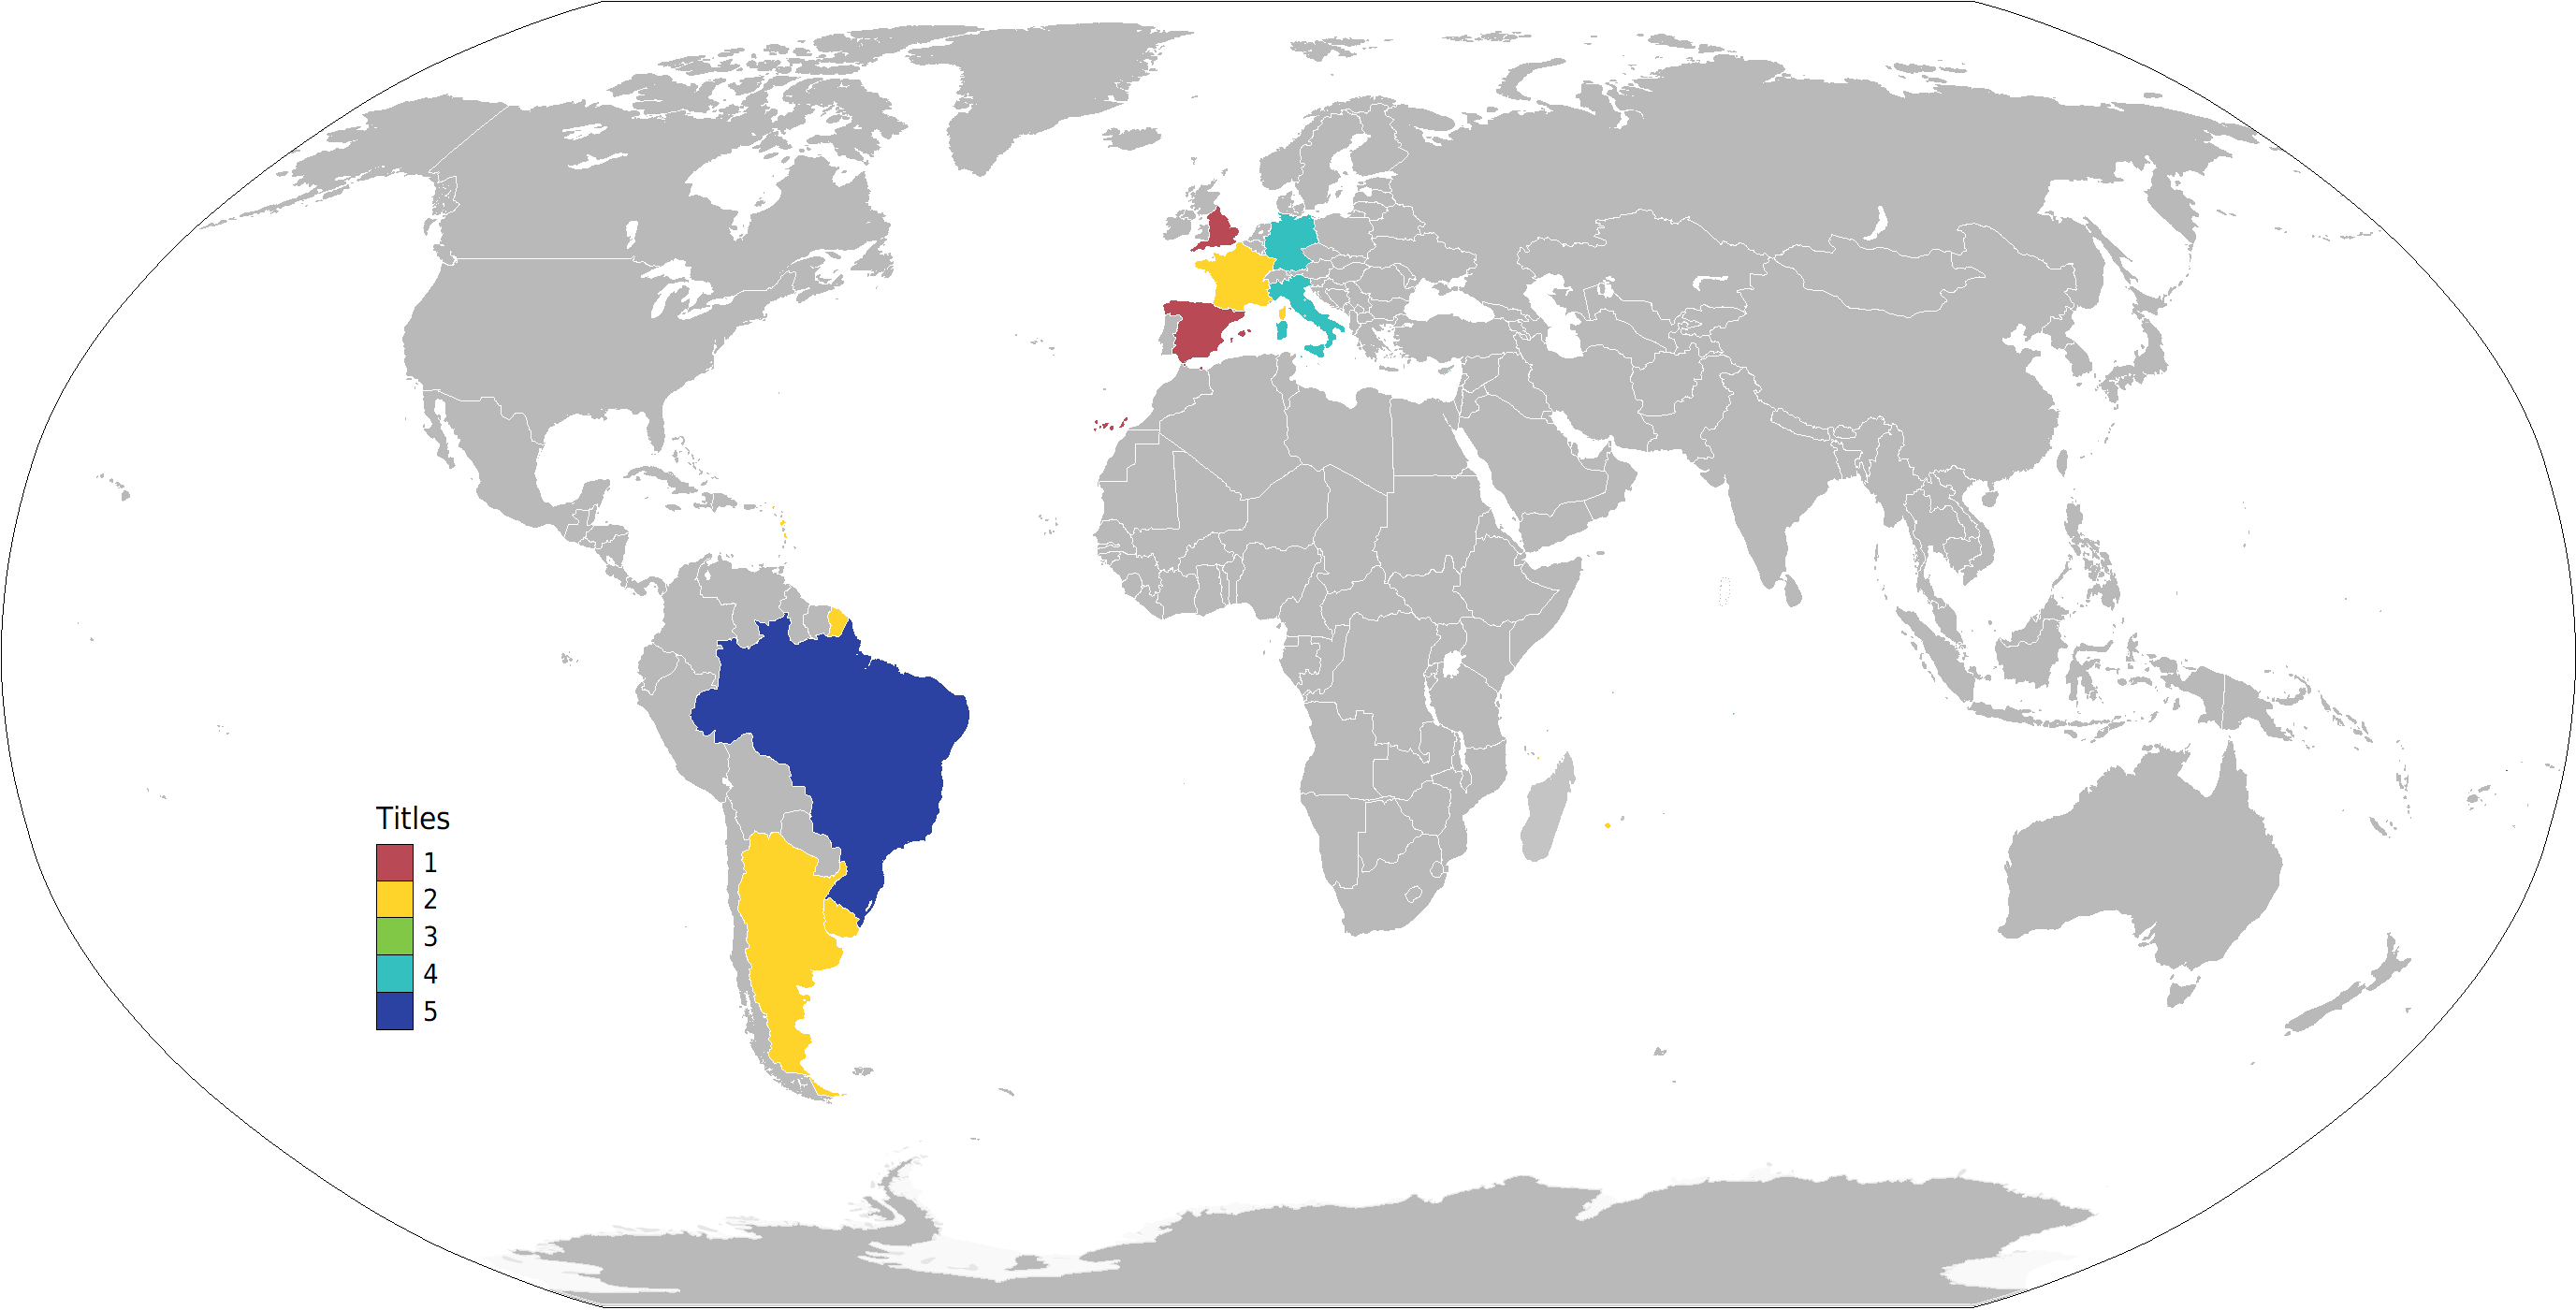 World Cup Winners by Country Map